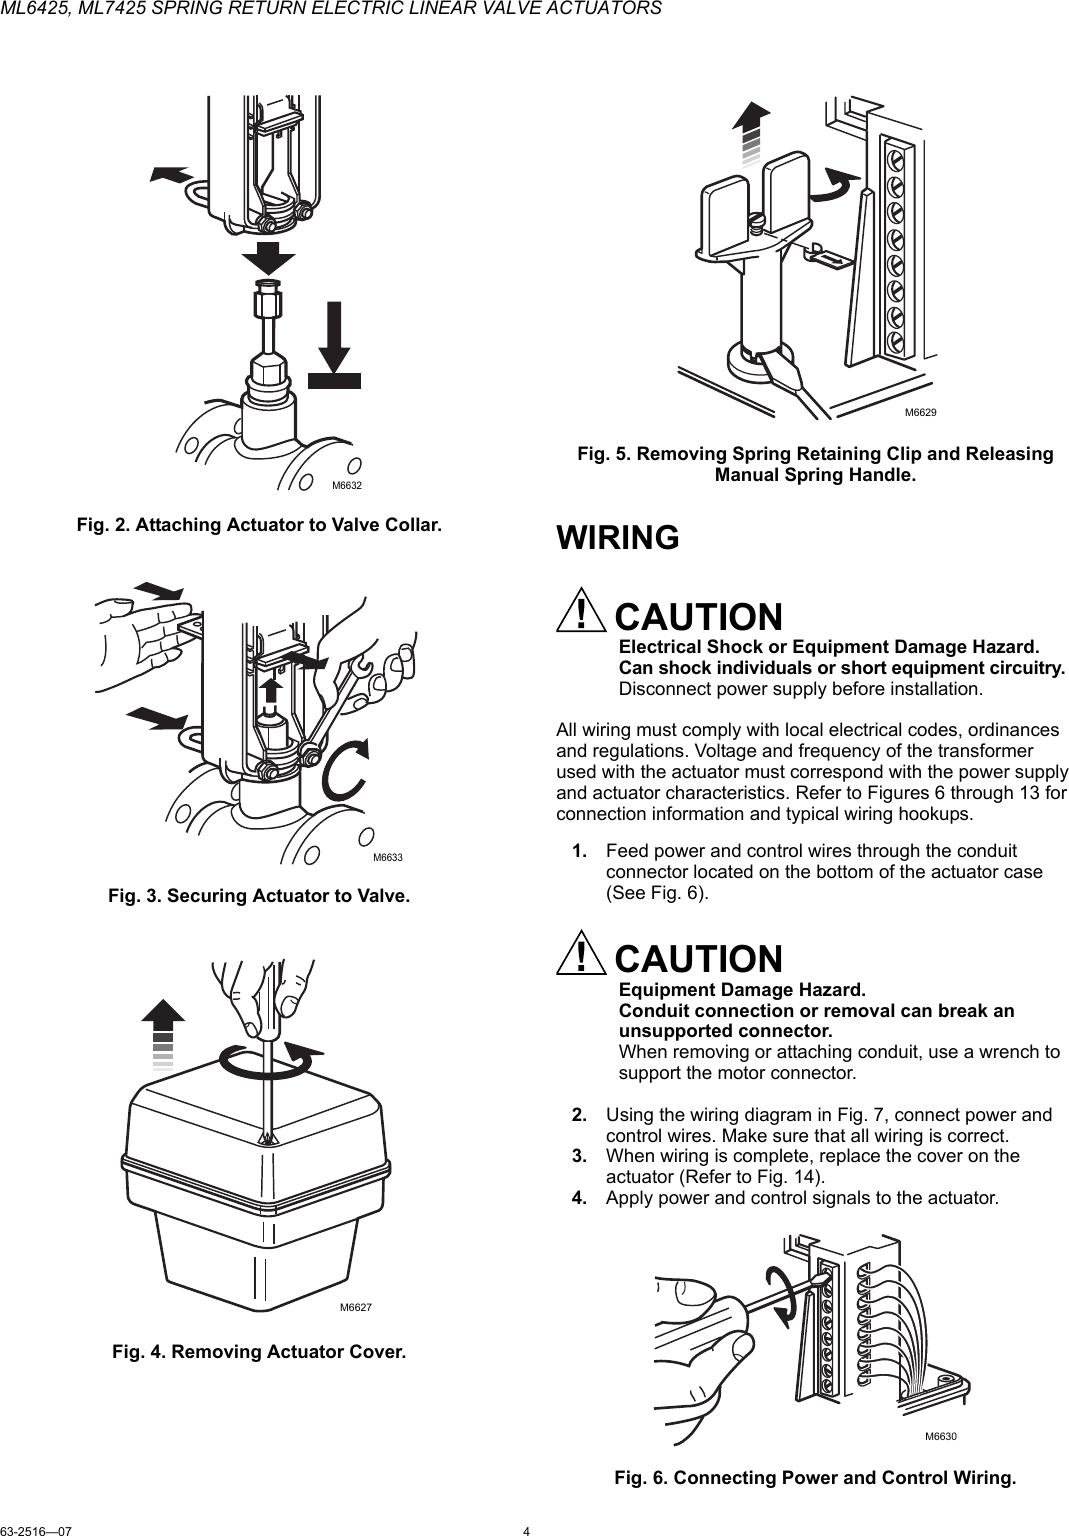 Honeywell Automobile Parts Ml6425 Users Manual 63 251607 Actuator Wiring Diagram Page 4 Of 8